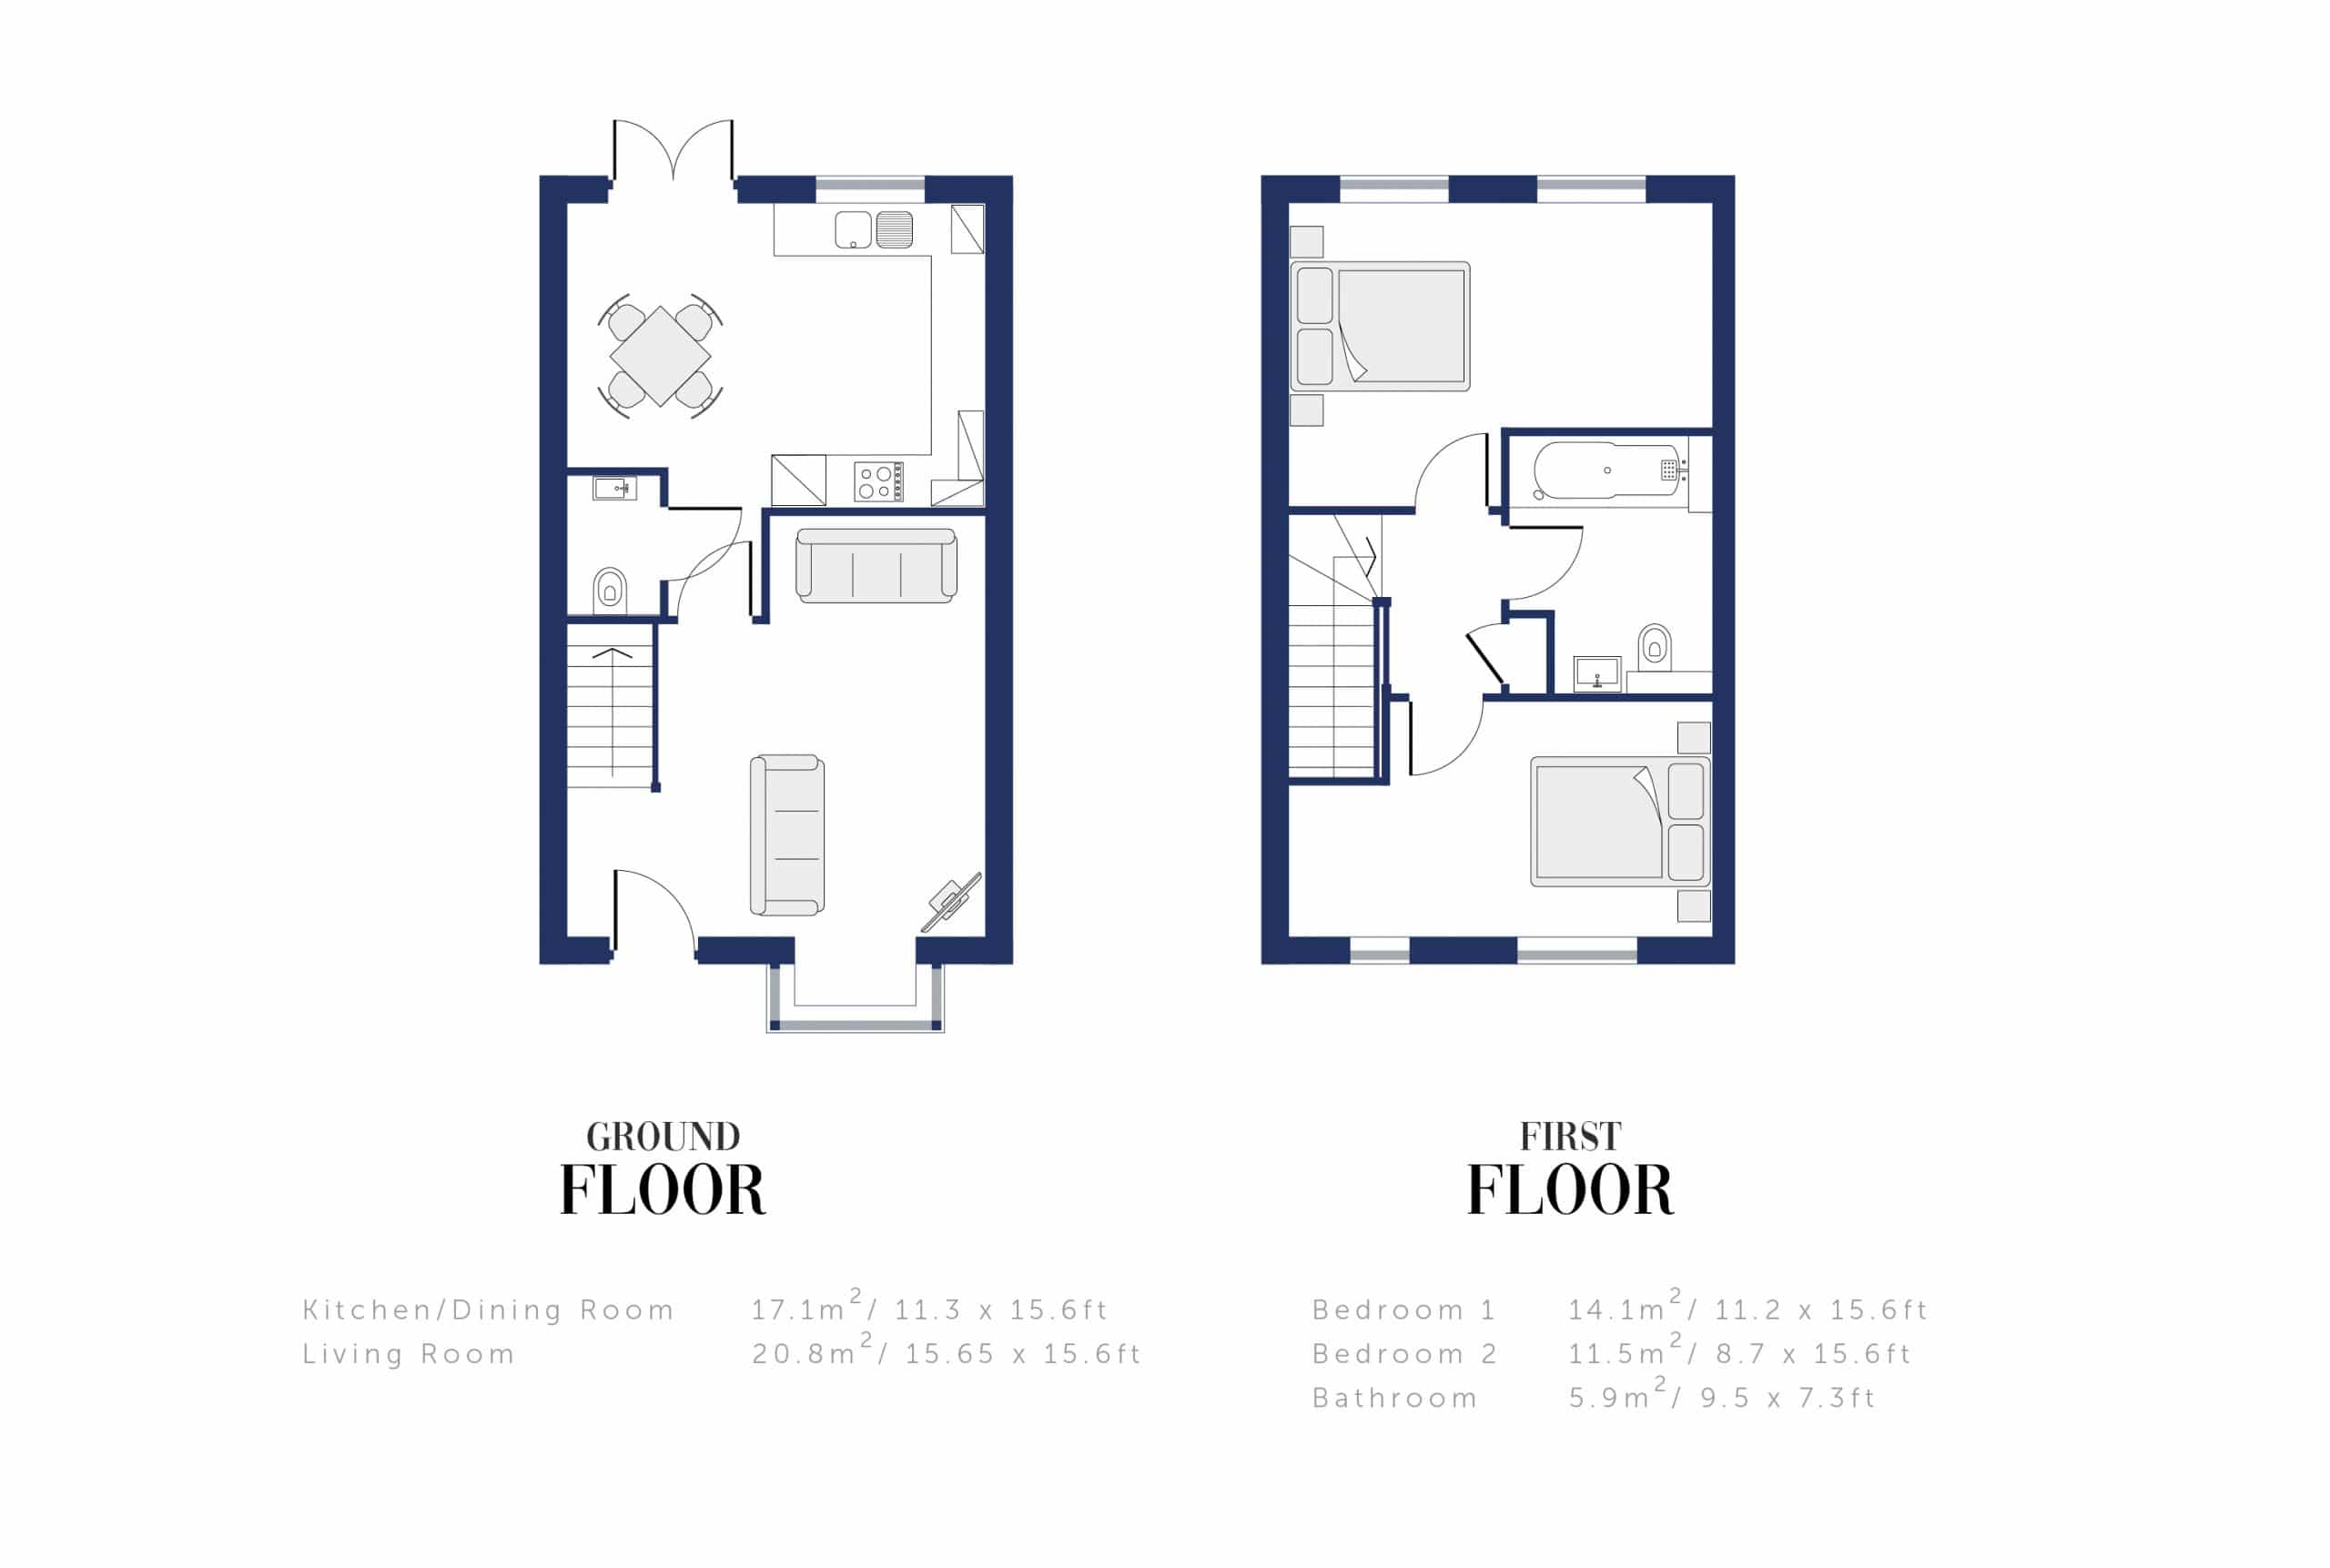 Sunningdale Millers Floor Plan and Sizing for WEB3